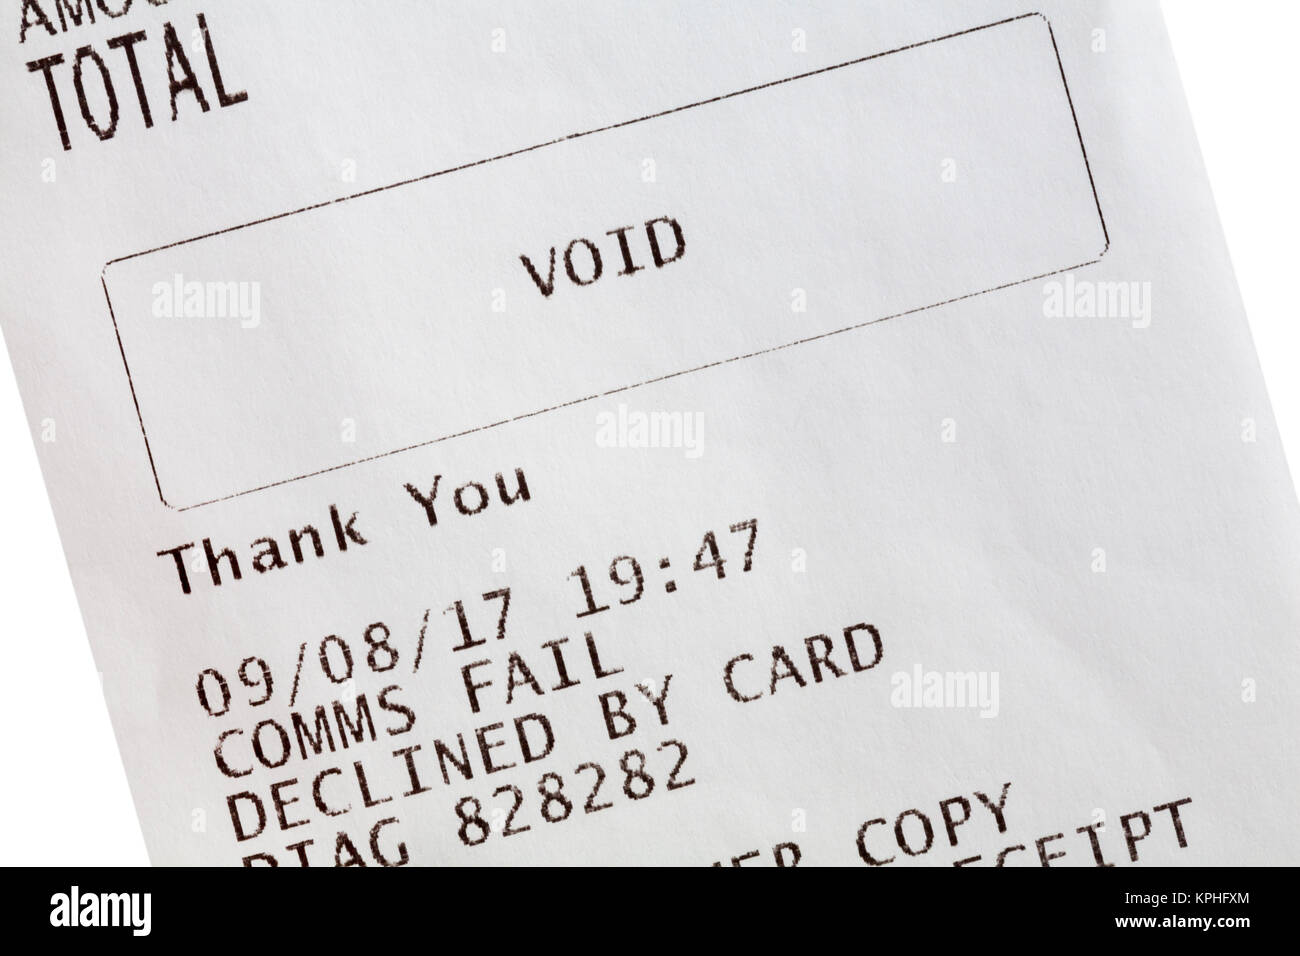 Void comms fail detail on paper roll receipt from card payment transaction - Stock Image